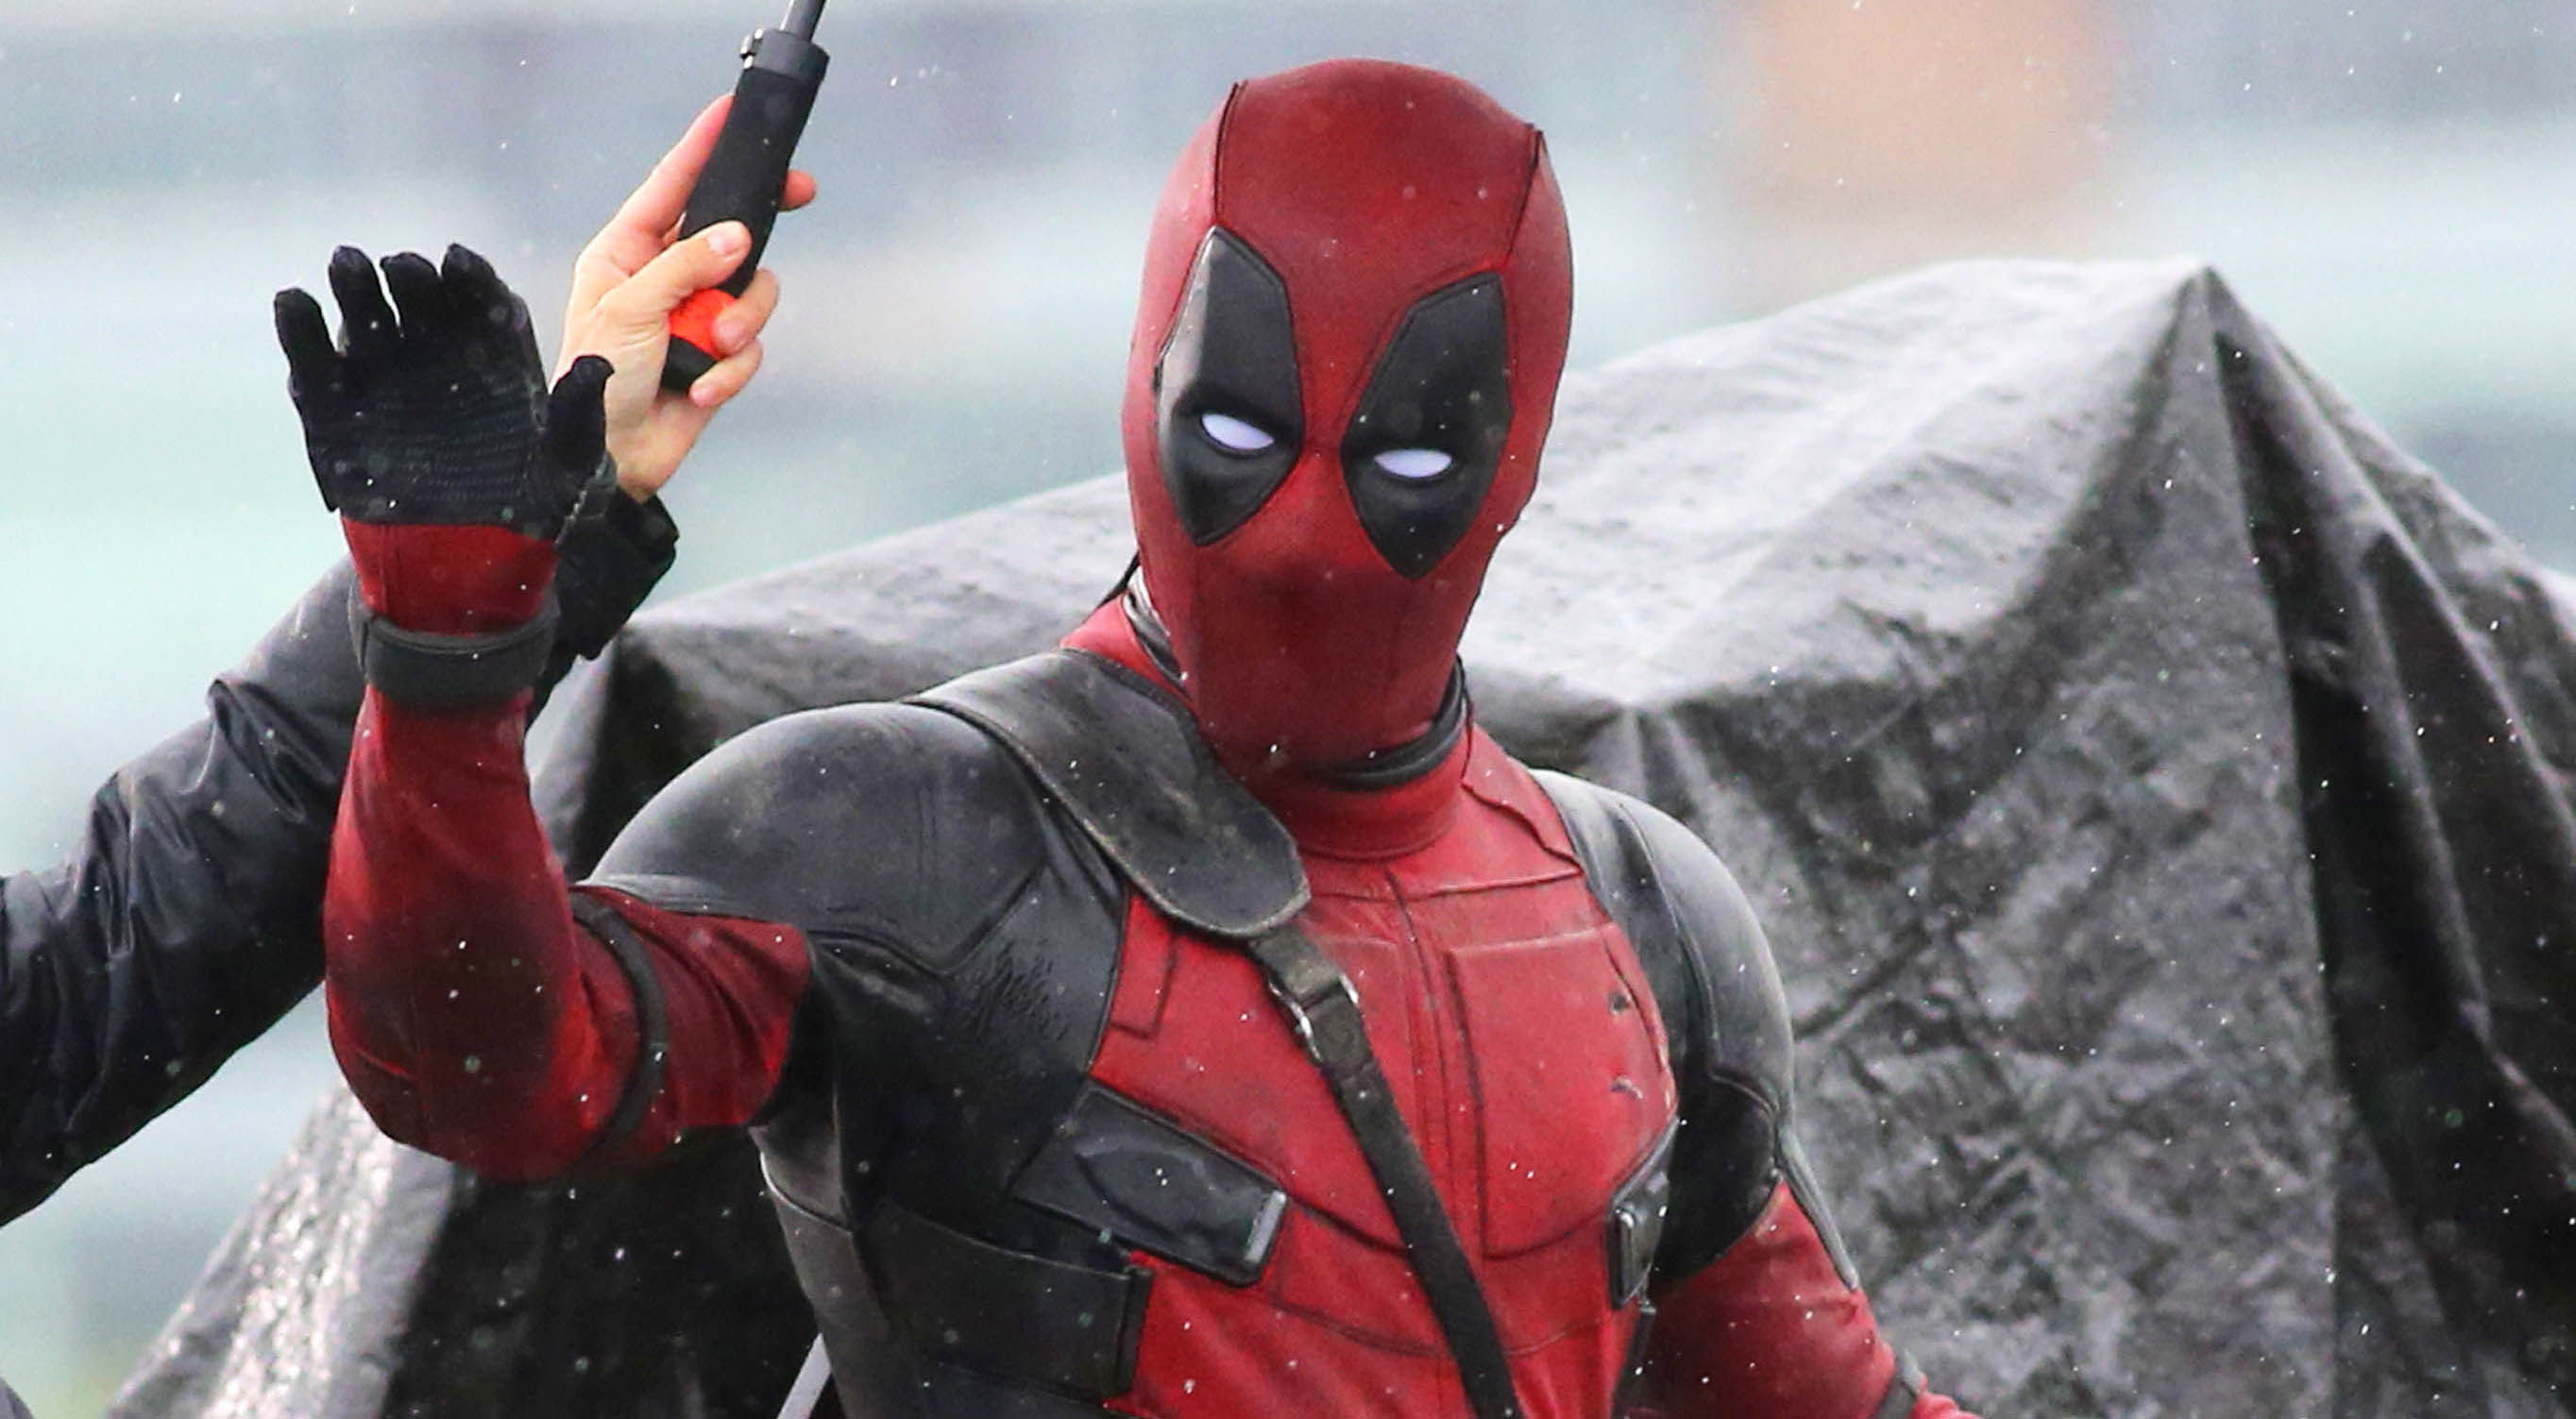 30 2015 By Stephen Comments Off on Deadpool Movie 2016 Wallpaper 2728x1503